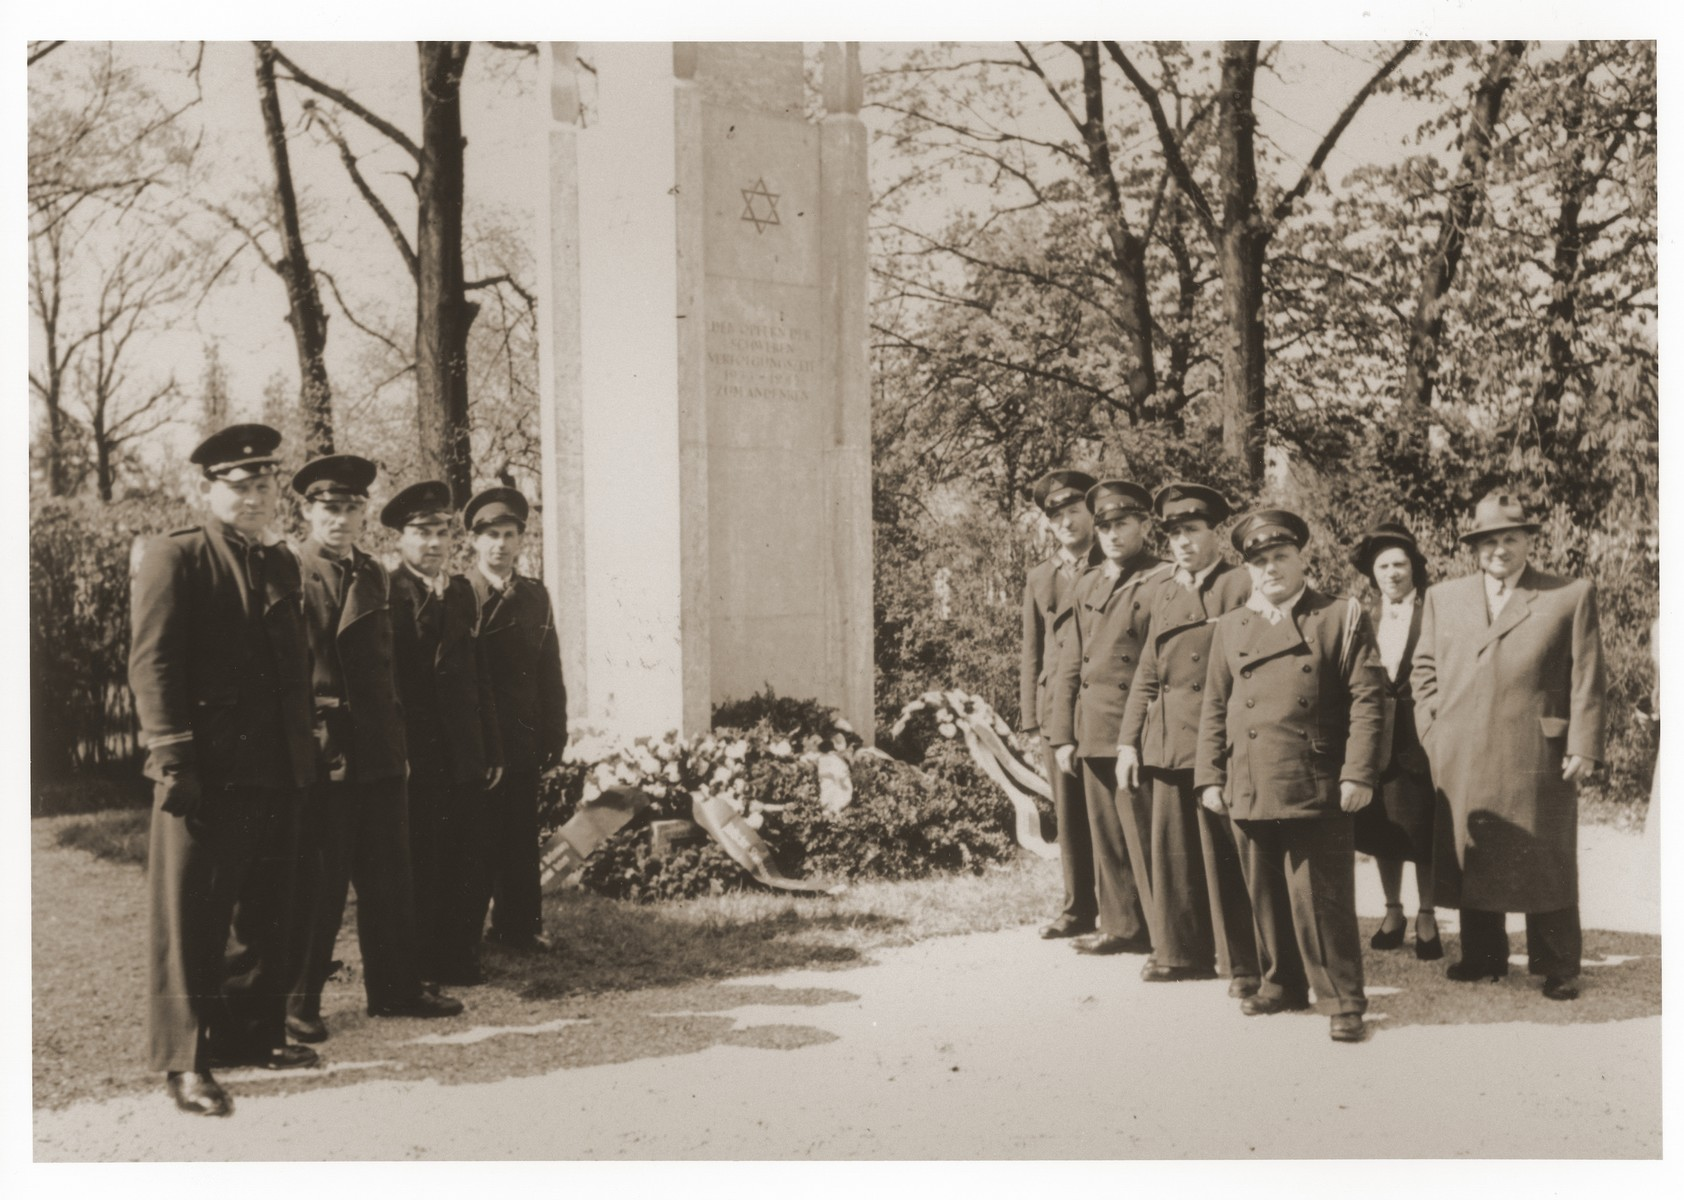 Jewish DP police from the Lechfeld displaced persons camp pose in front of the memorial to Jewish victims at the Dachau concentration camp.